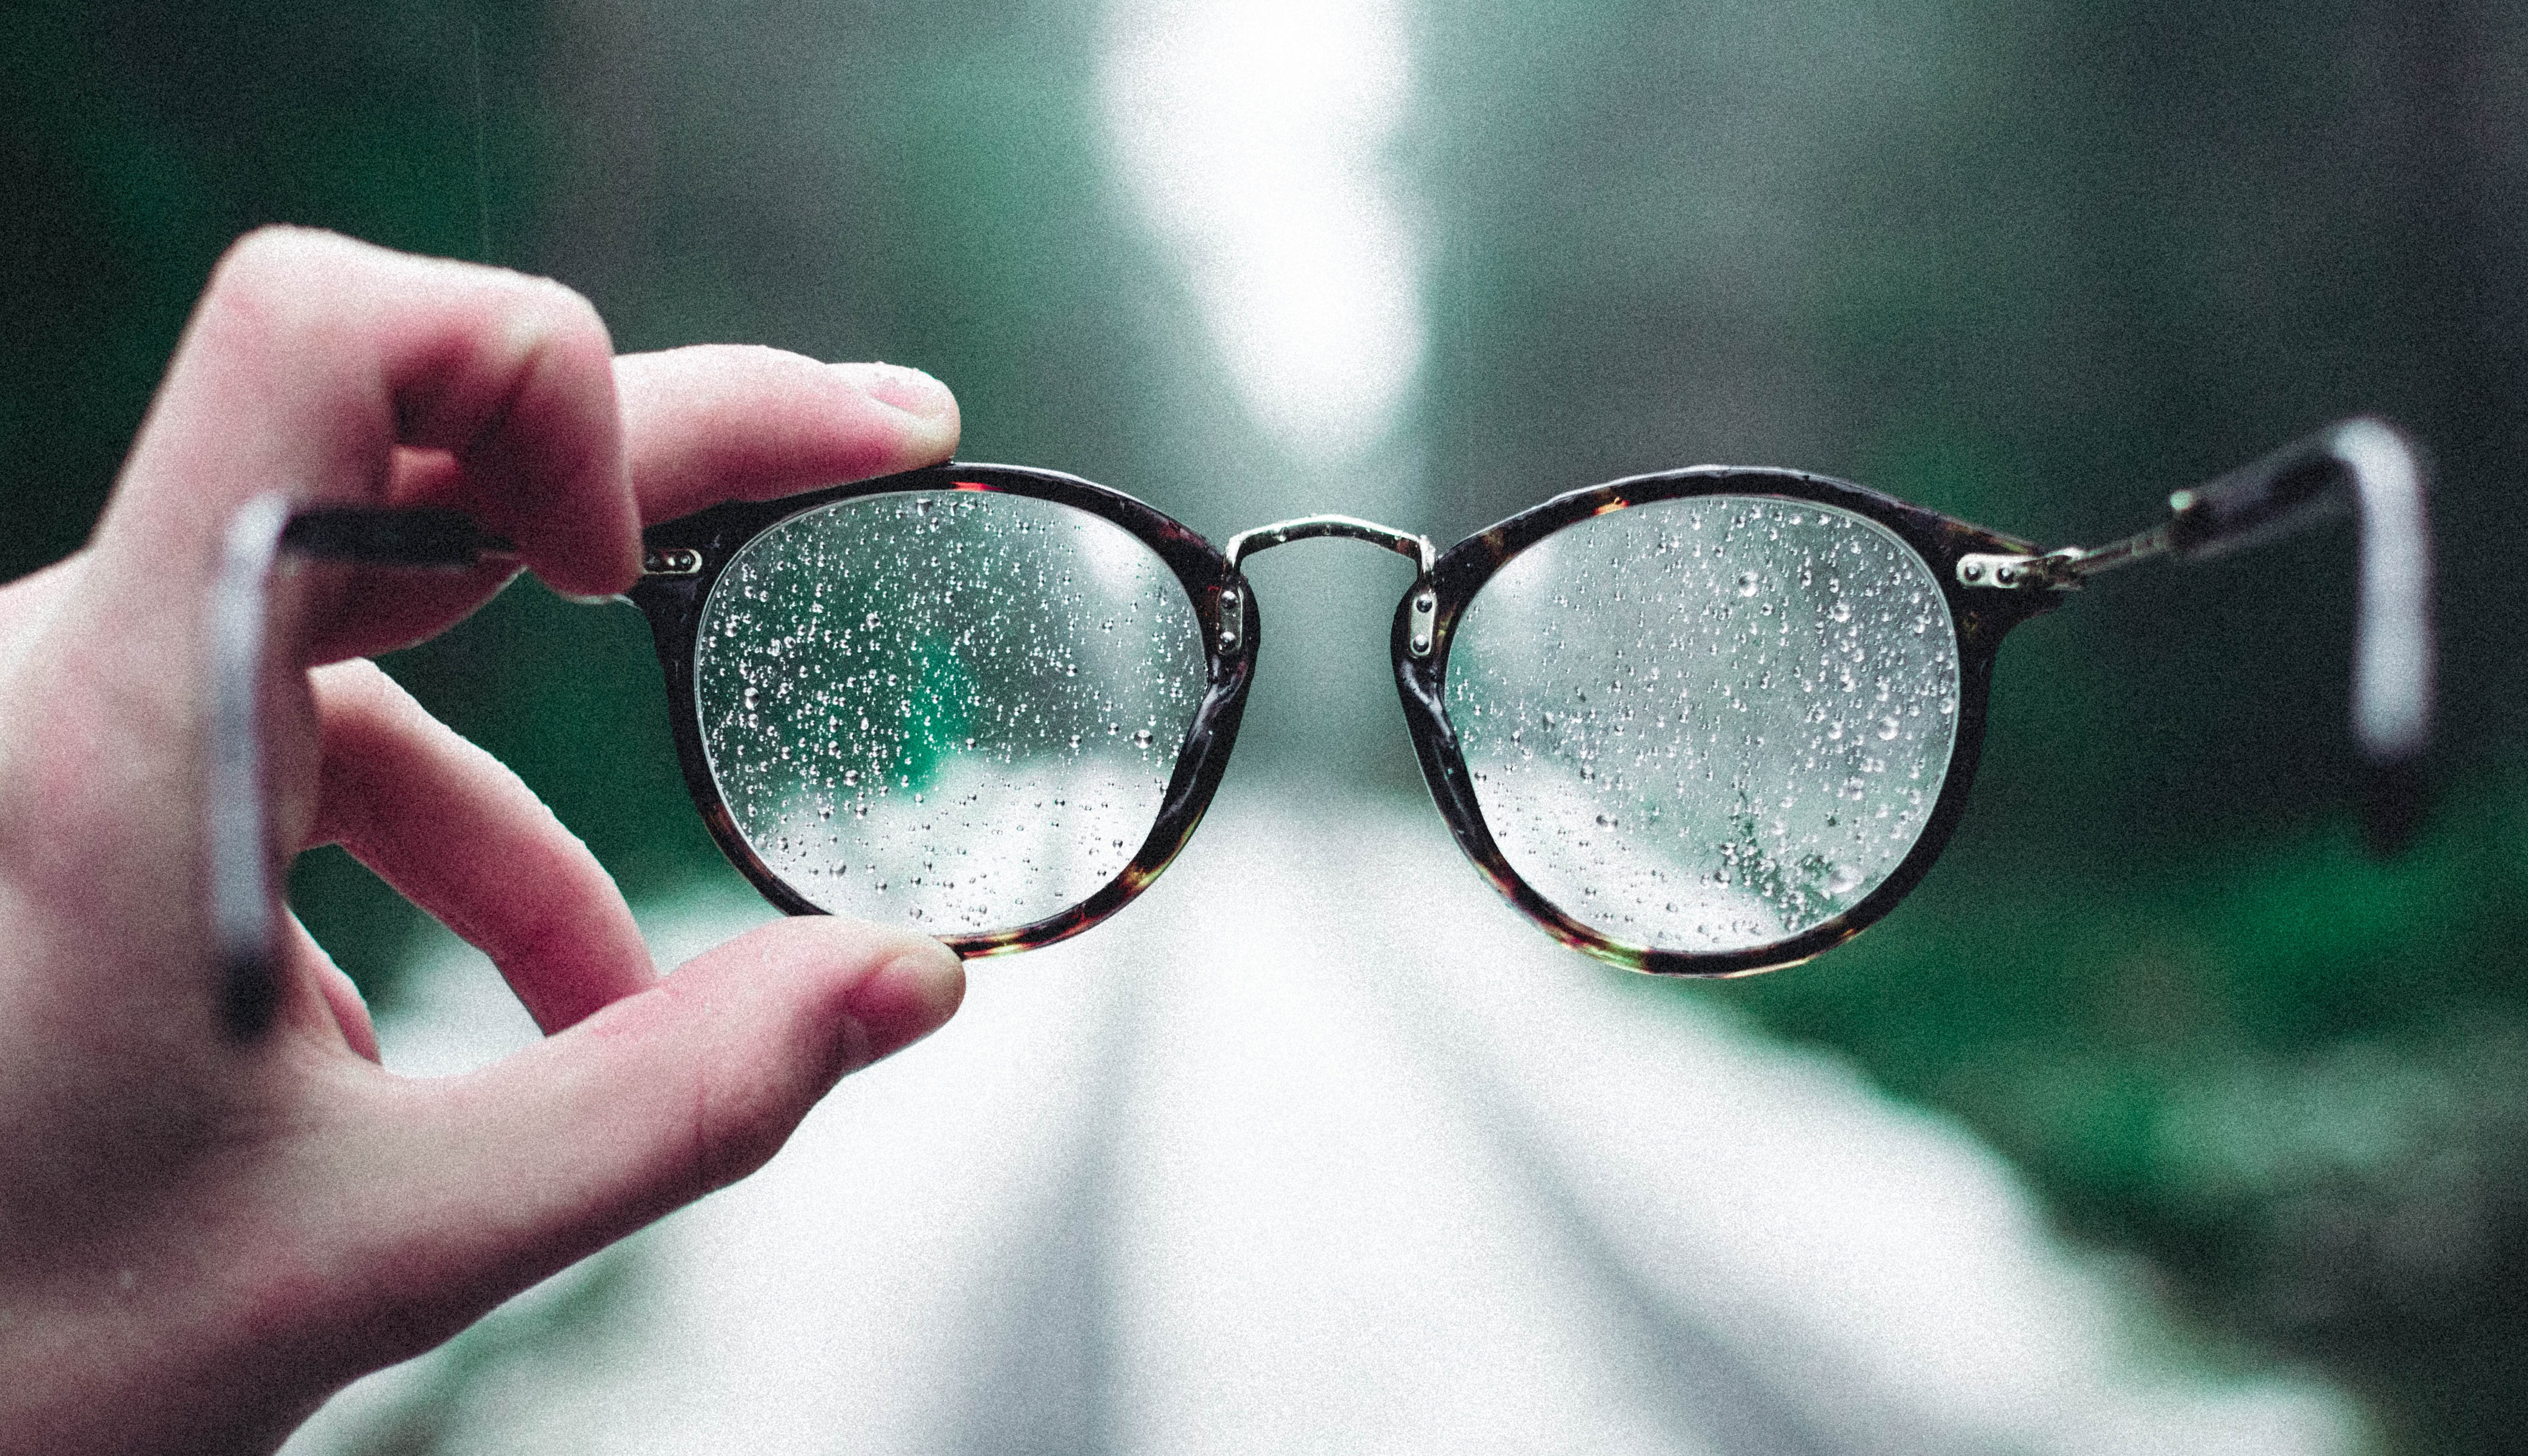 person holding eyeglasses with water droplets